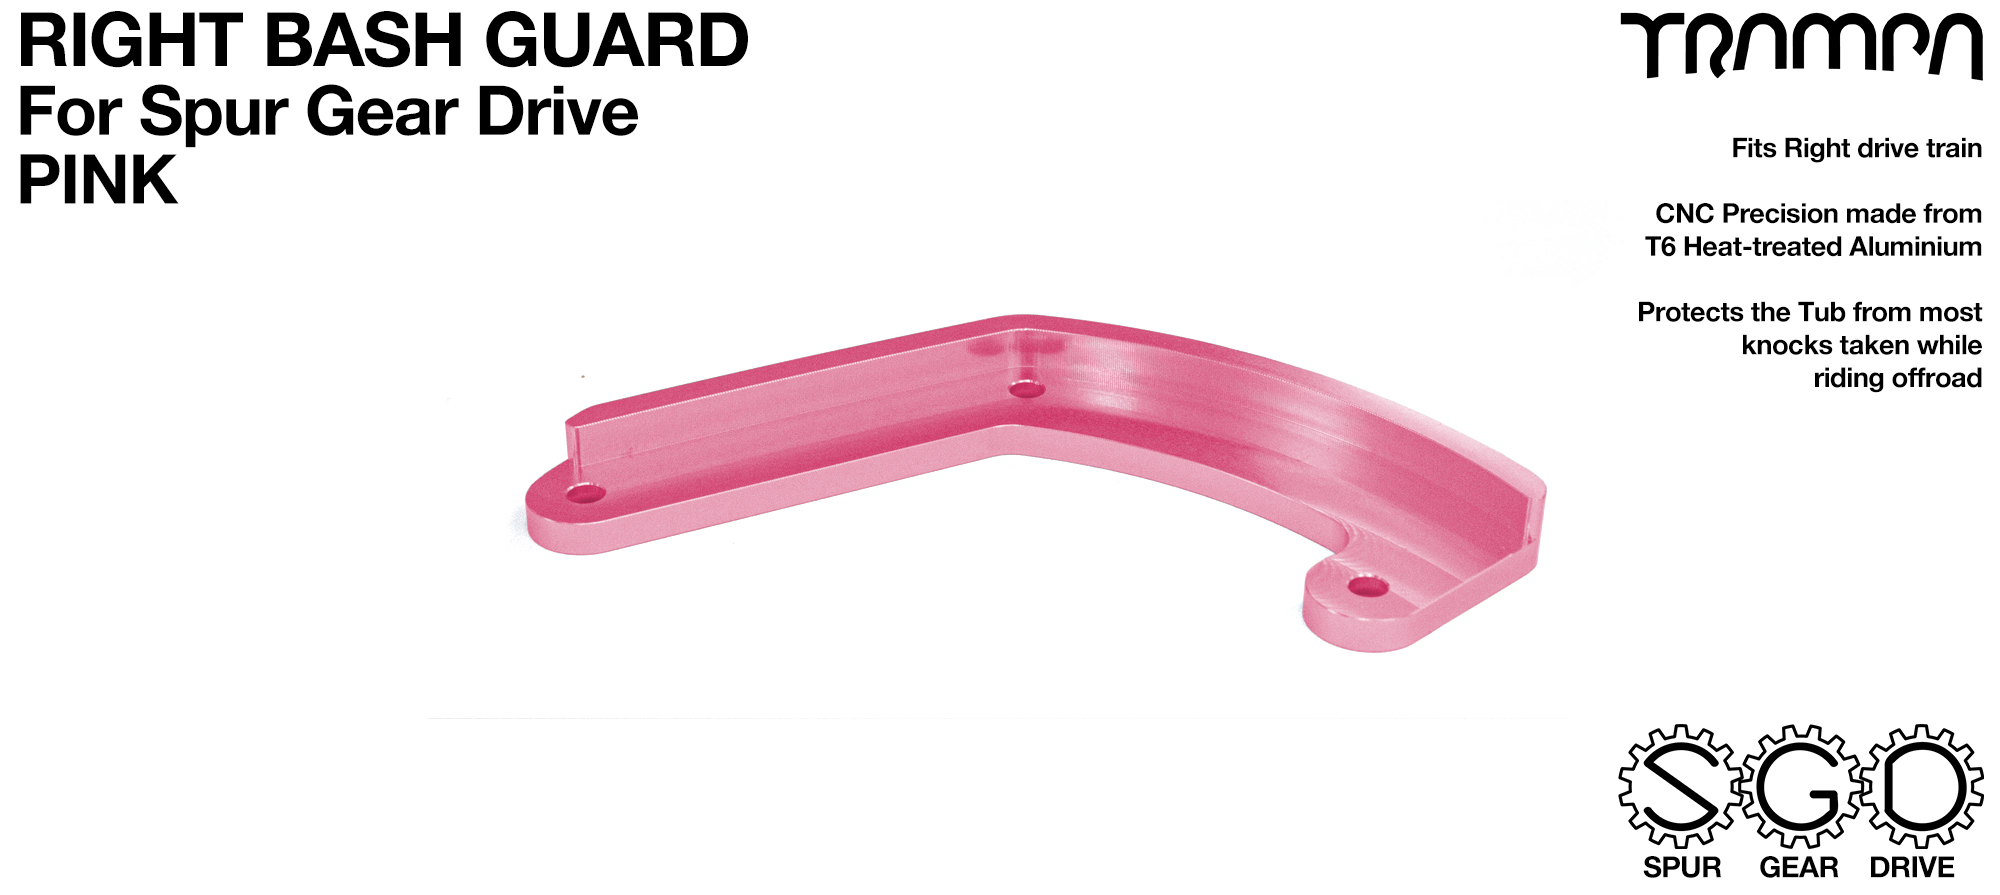 MkII Spur Gear Drive Bash Guard - RIGHT Side - PINK